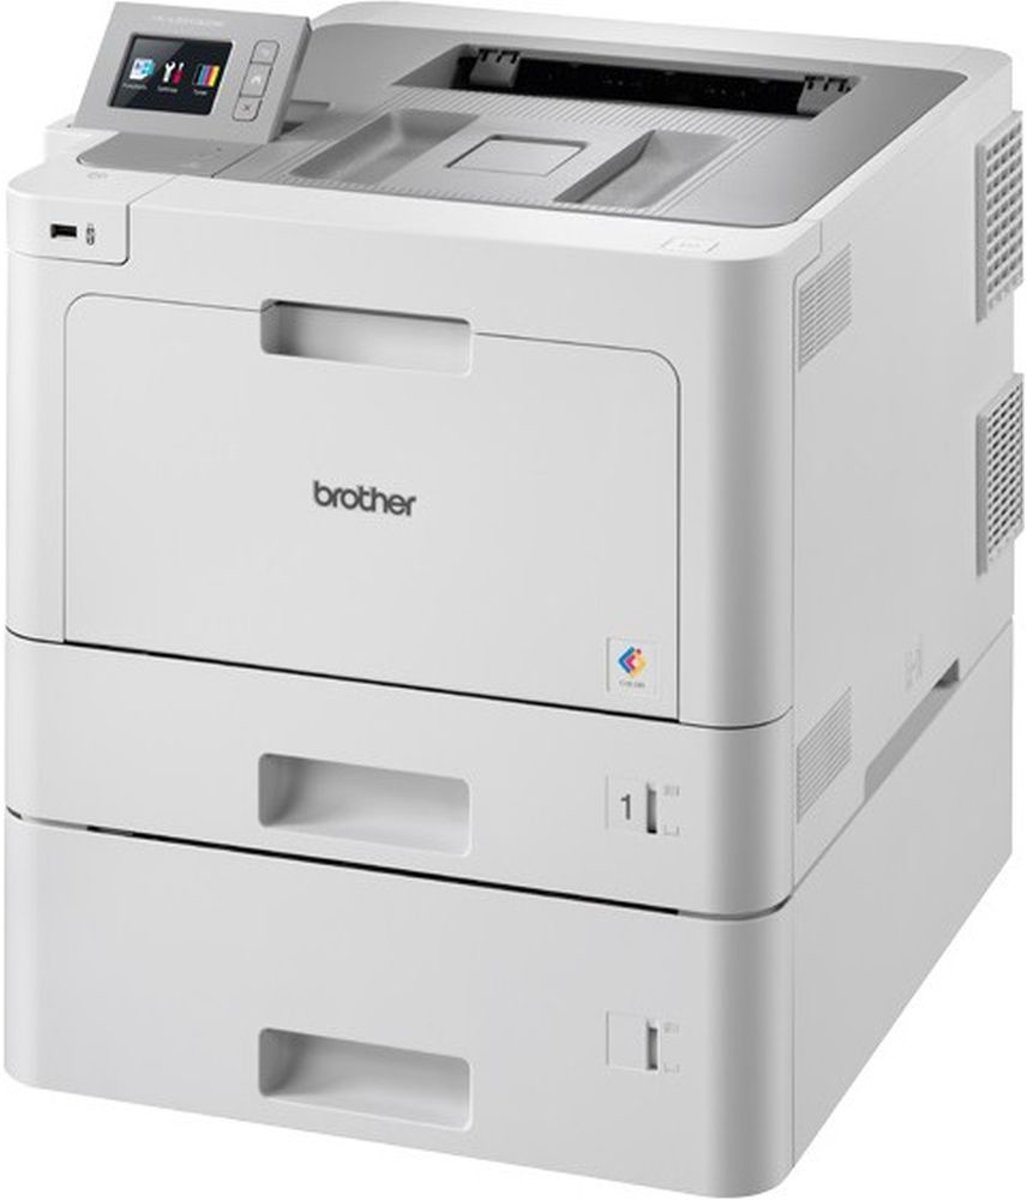 HL-L9310CDWT met SecurePrint+